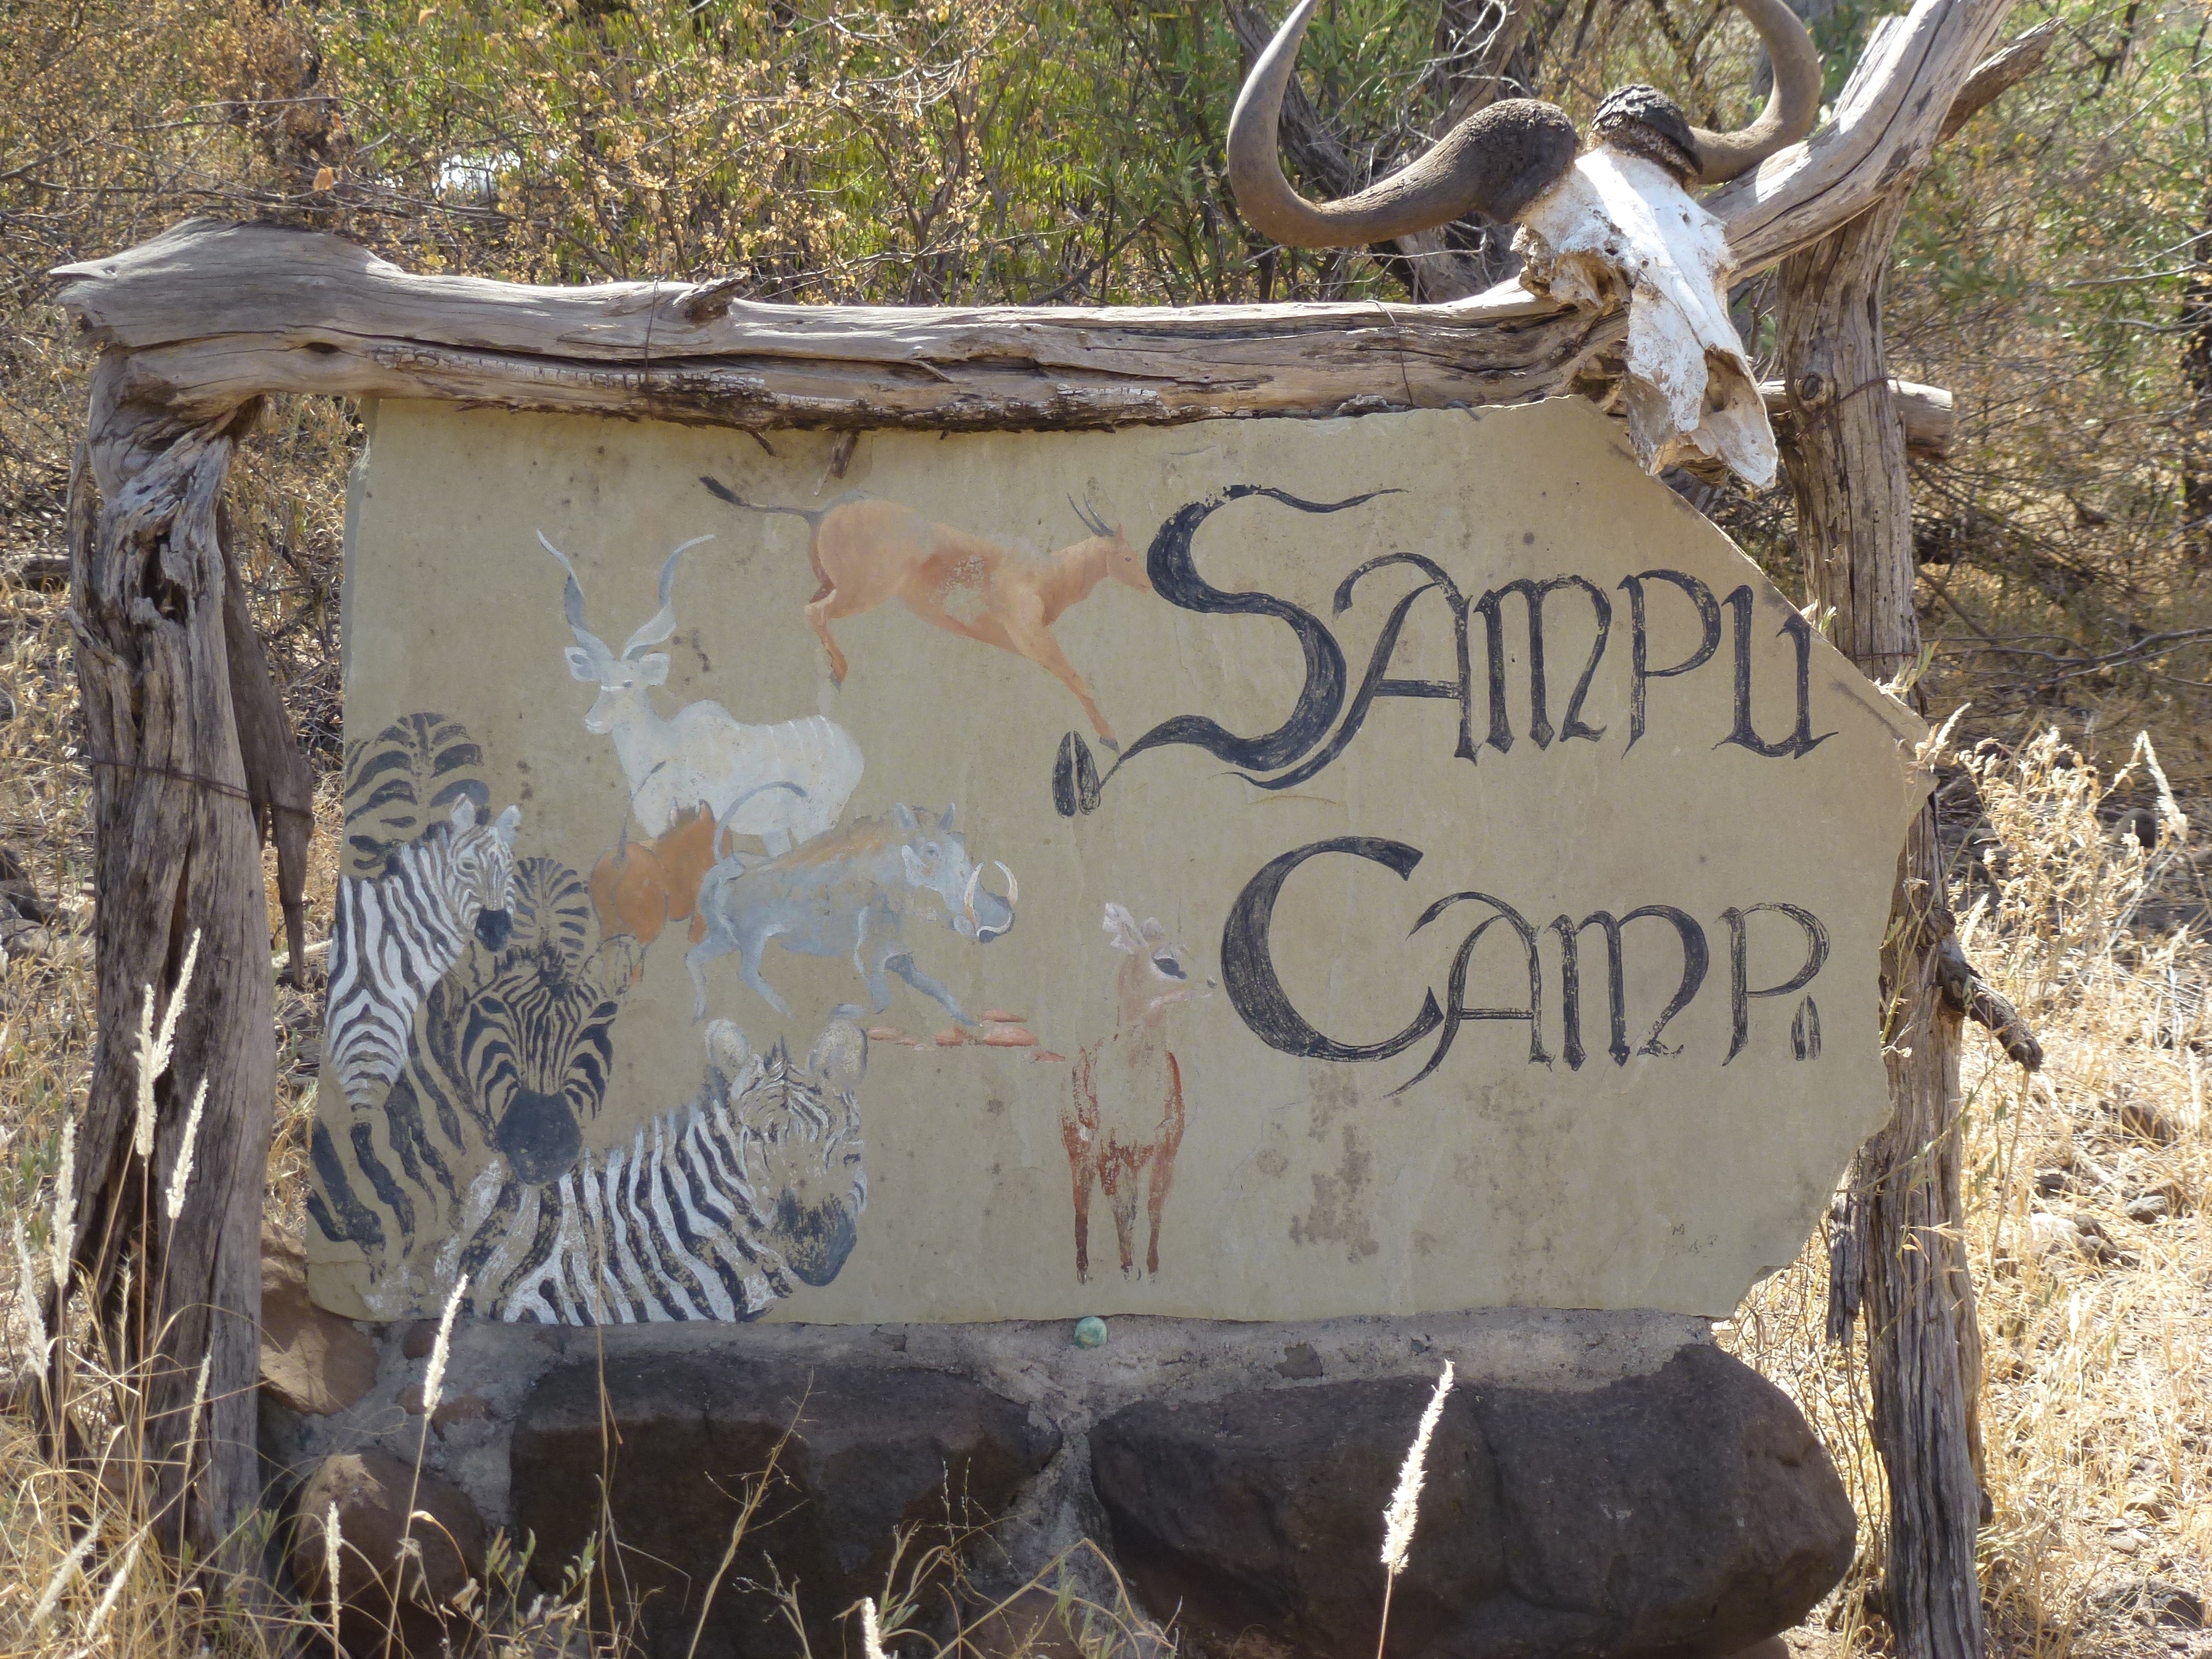 Photo: Sampu Camp is leased out to a tour operator for extra revenue